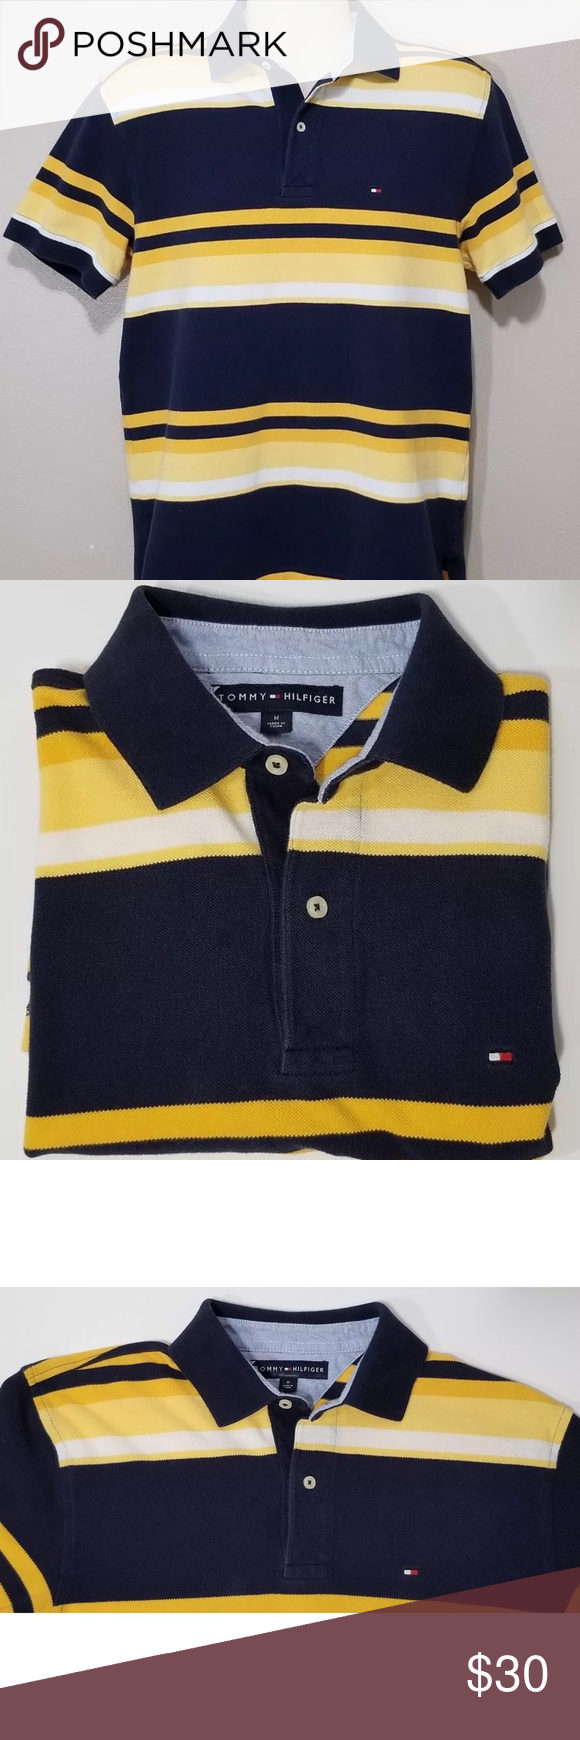 69a03e57 Men's Tommy Hilfiger Striped Polo Shirt Pre-owned Mens Tommy Hilfiger  Striped Polo Shirt • Blue, Yellow, and White • Medium • Chest= 21